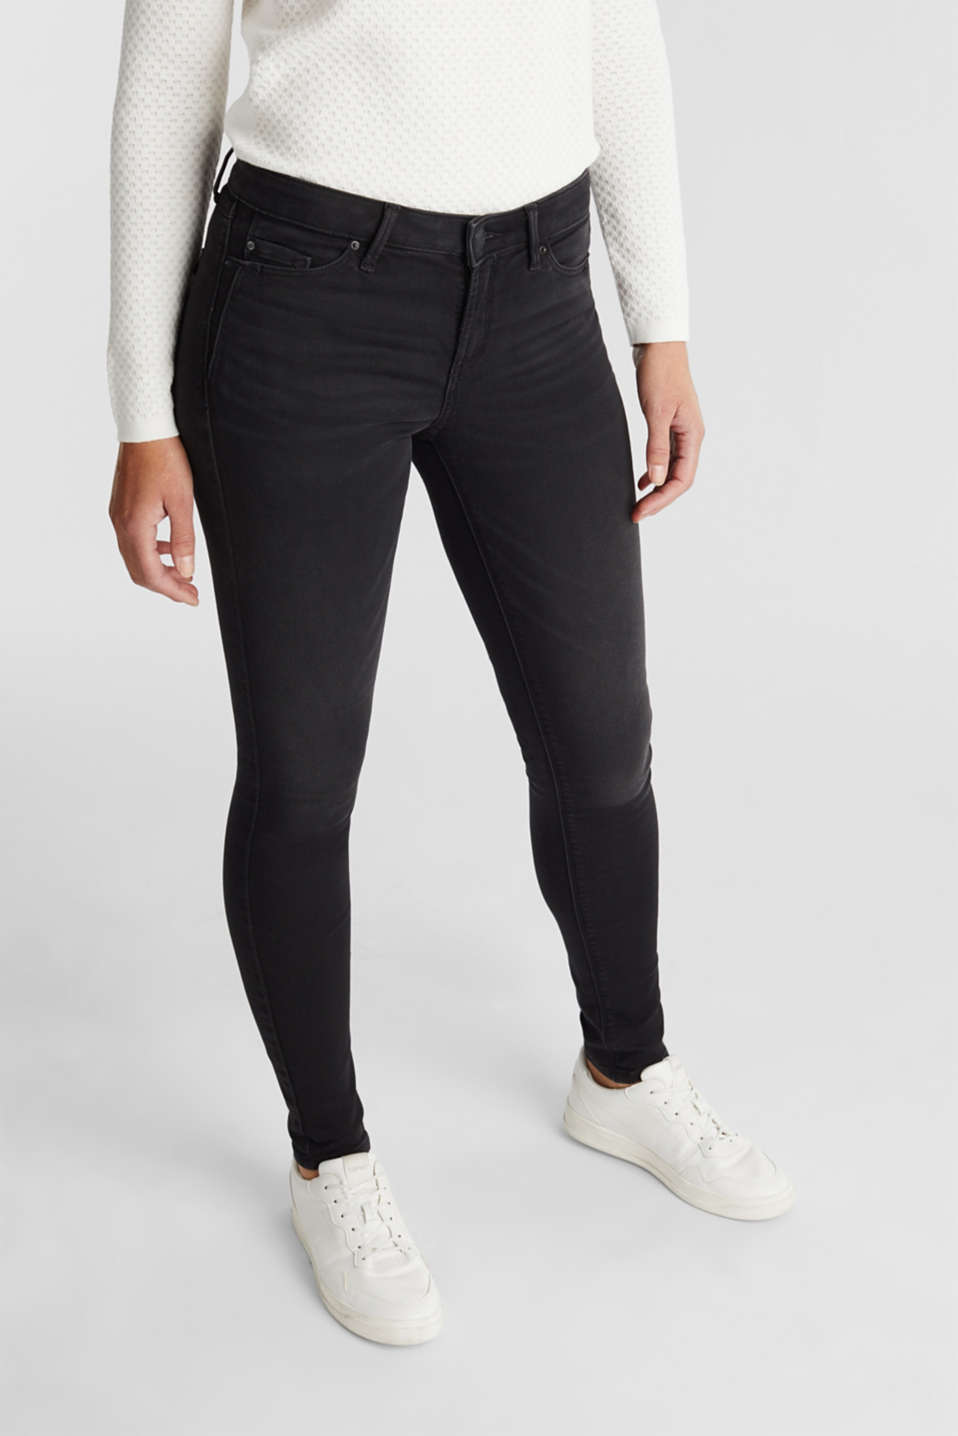 Esprit - Black denim jeans in tracksuit fabric